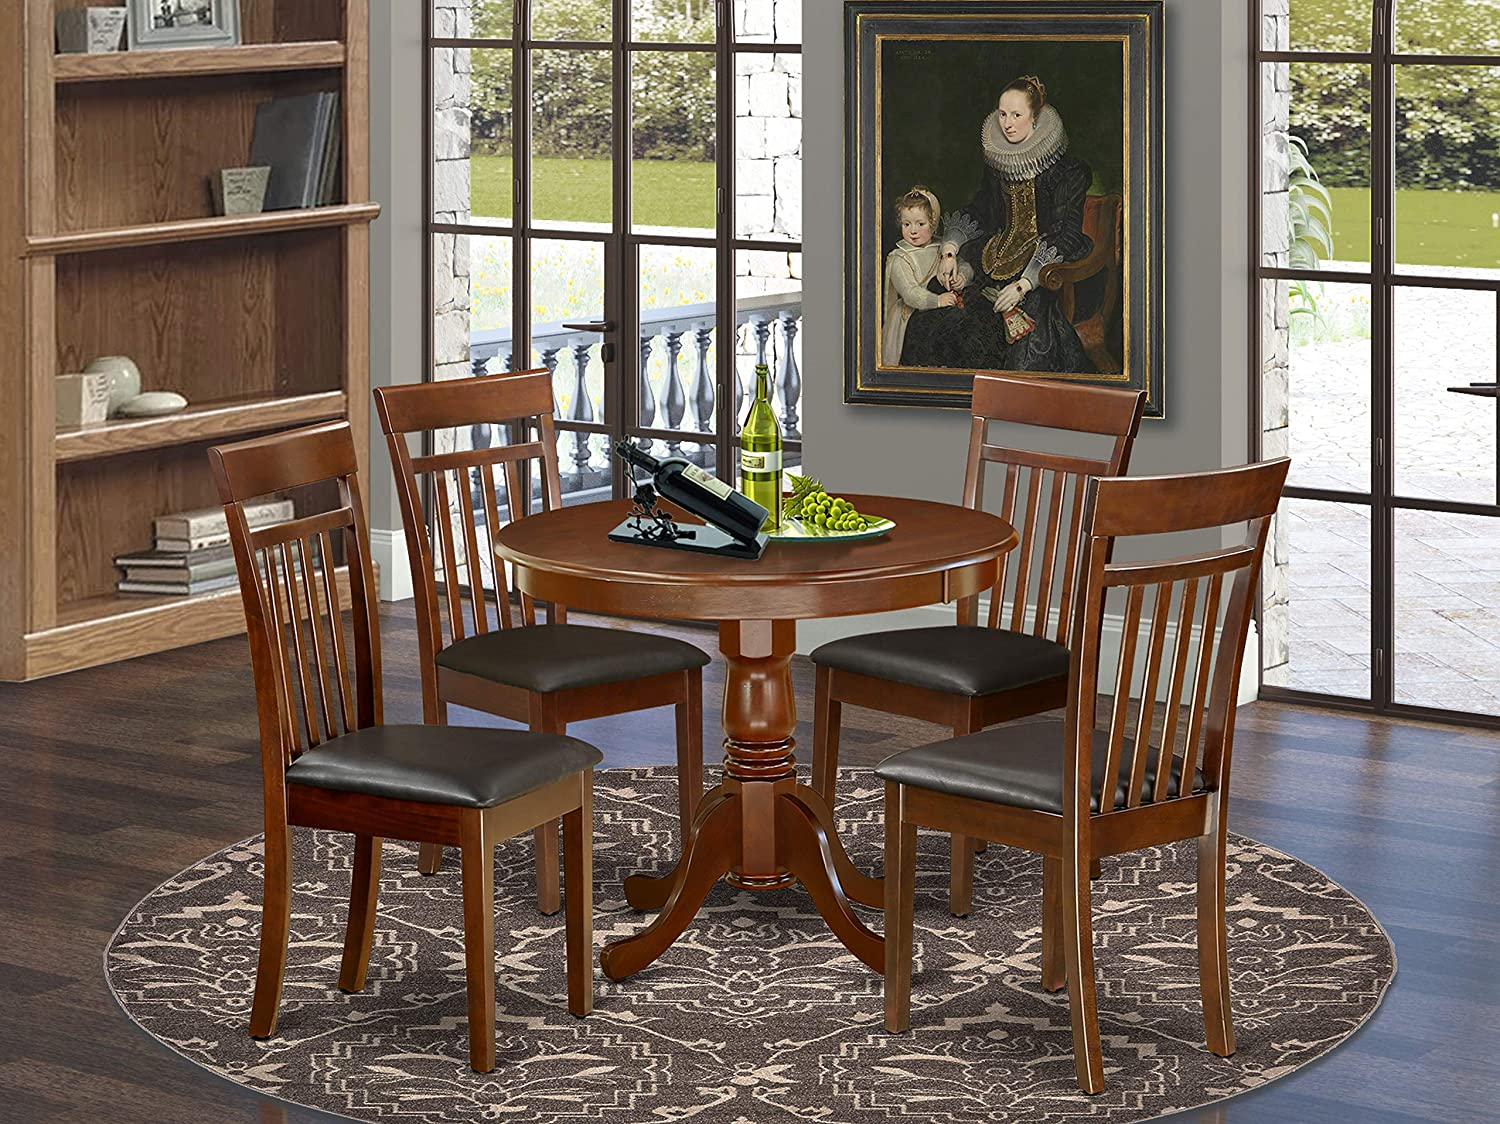 East West Furniture ANCA5-MAH-LC Finally resale start cheap Kitchen Set- 4 Exc Table Dining